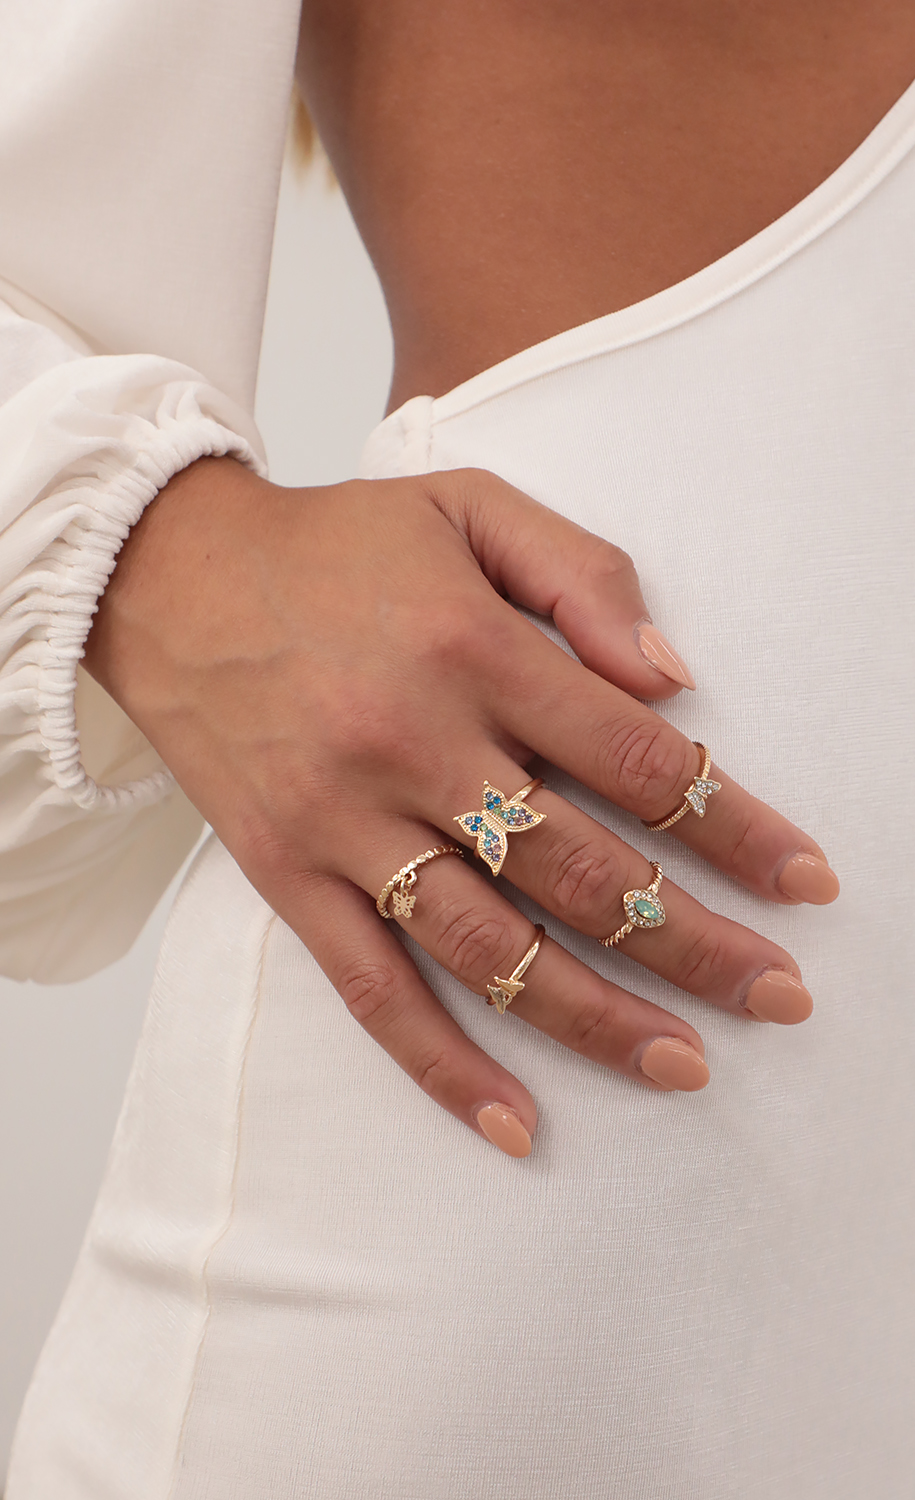 Run Away With Me Ring Set in Gold